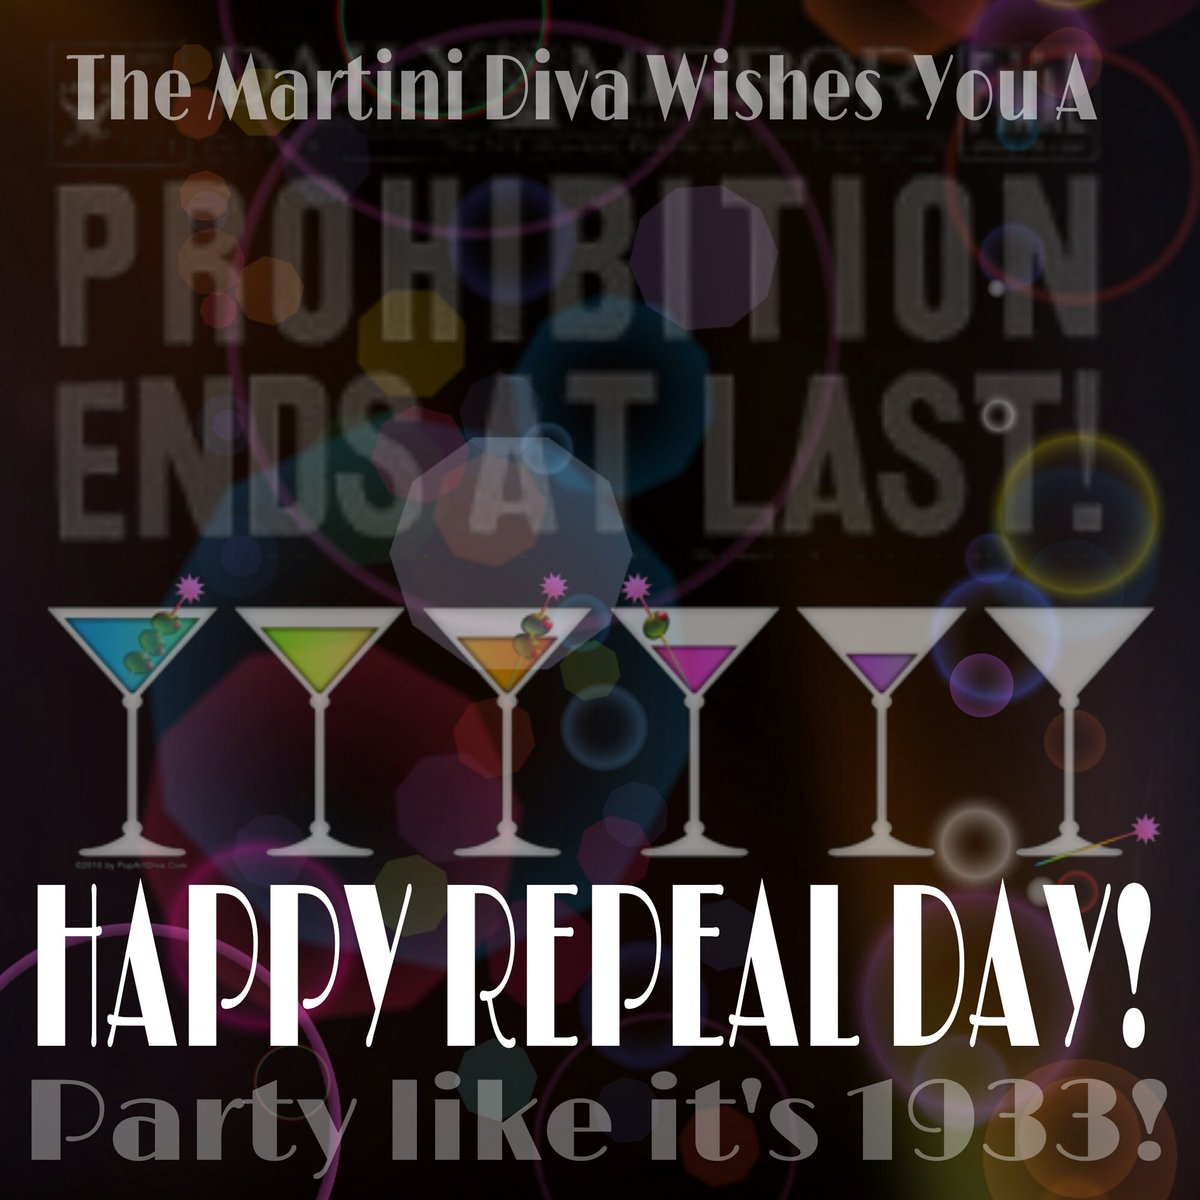 On this day in 1933 #Prohibition ended! All about America's #NobleExperiment: https://t.co/OwZ4MoWPp8 https://t.co/lqZVfqHzEt